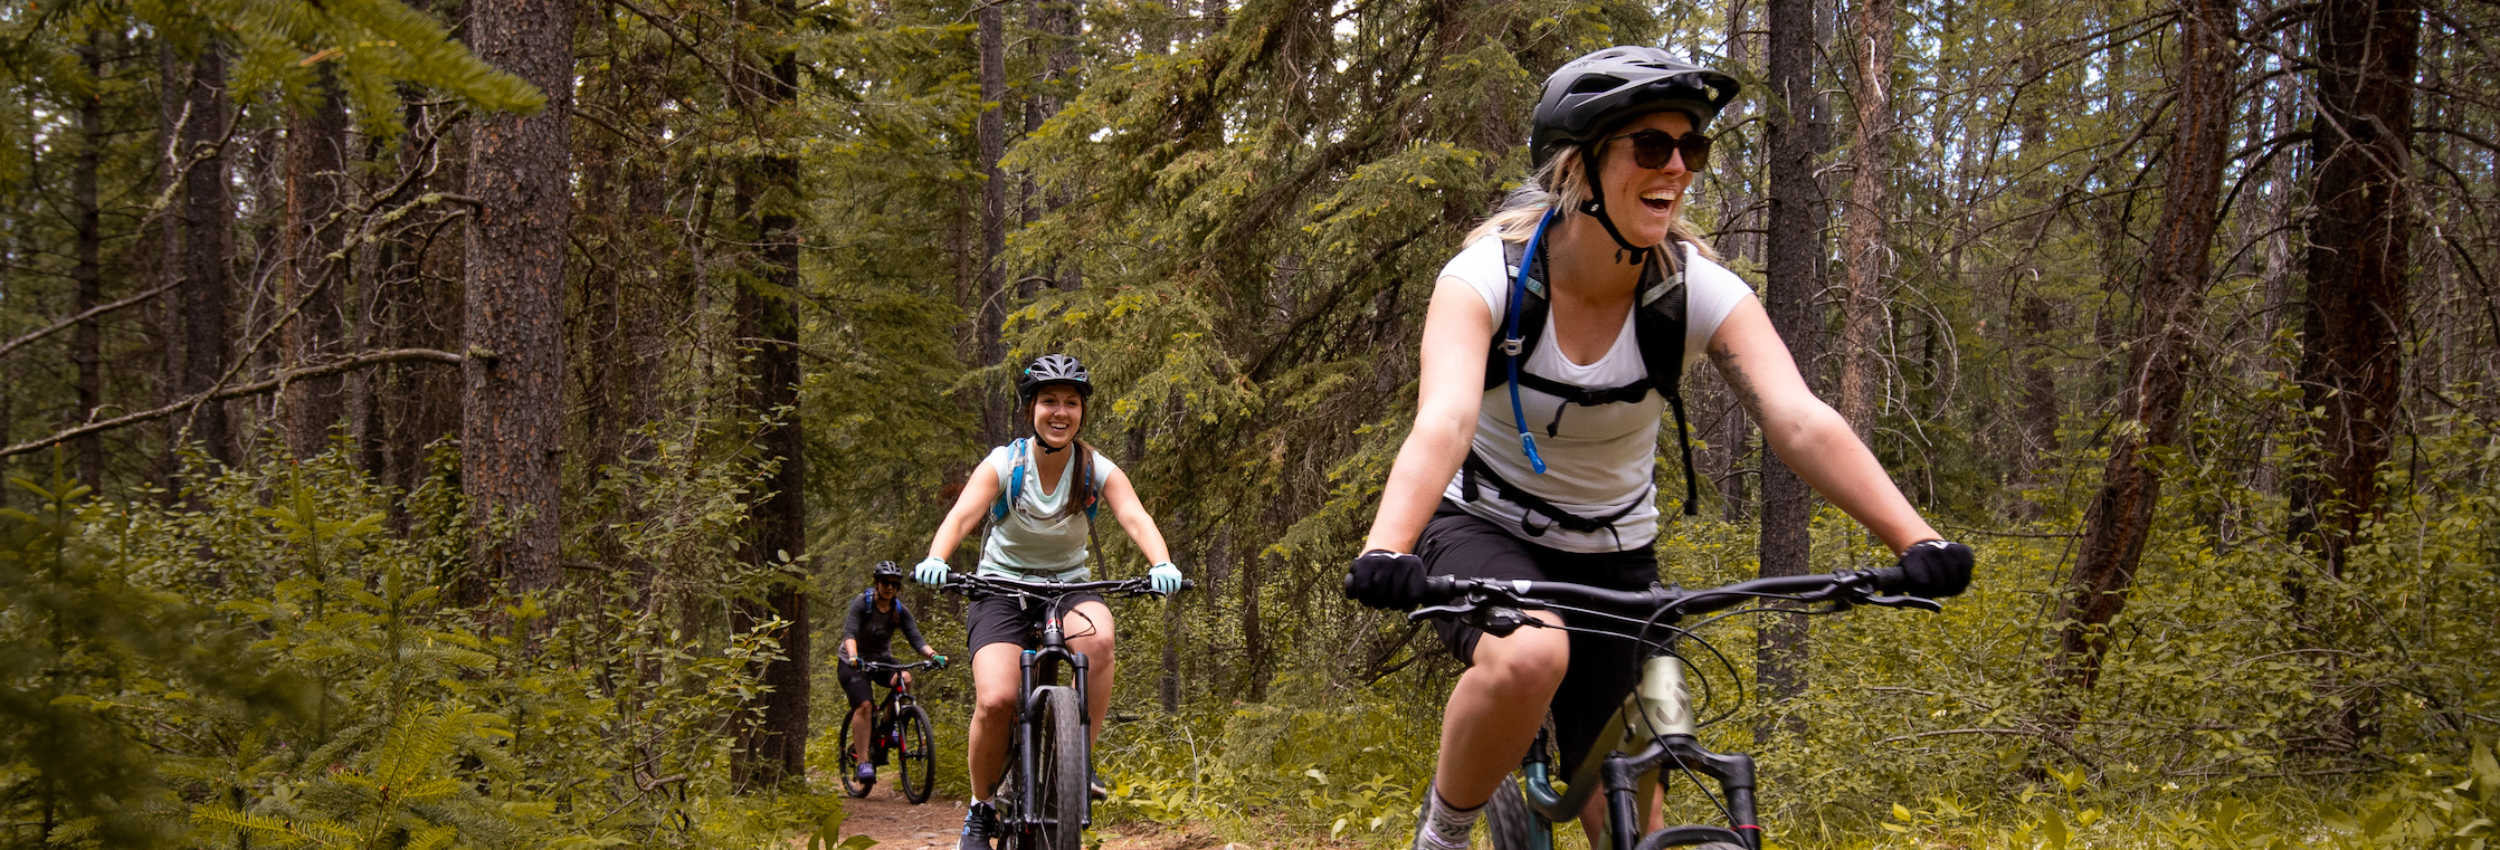 resize01 – JULY 12TH, 2020 – SHRED SISTERS CANMORE CLASS 63 copy